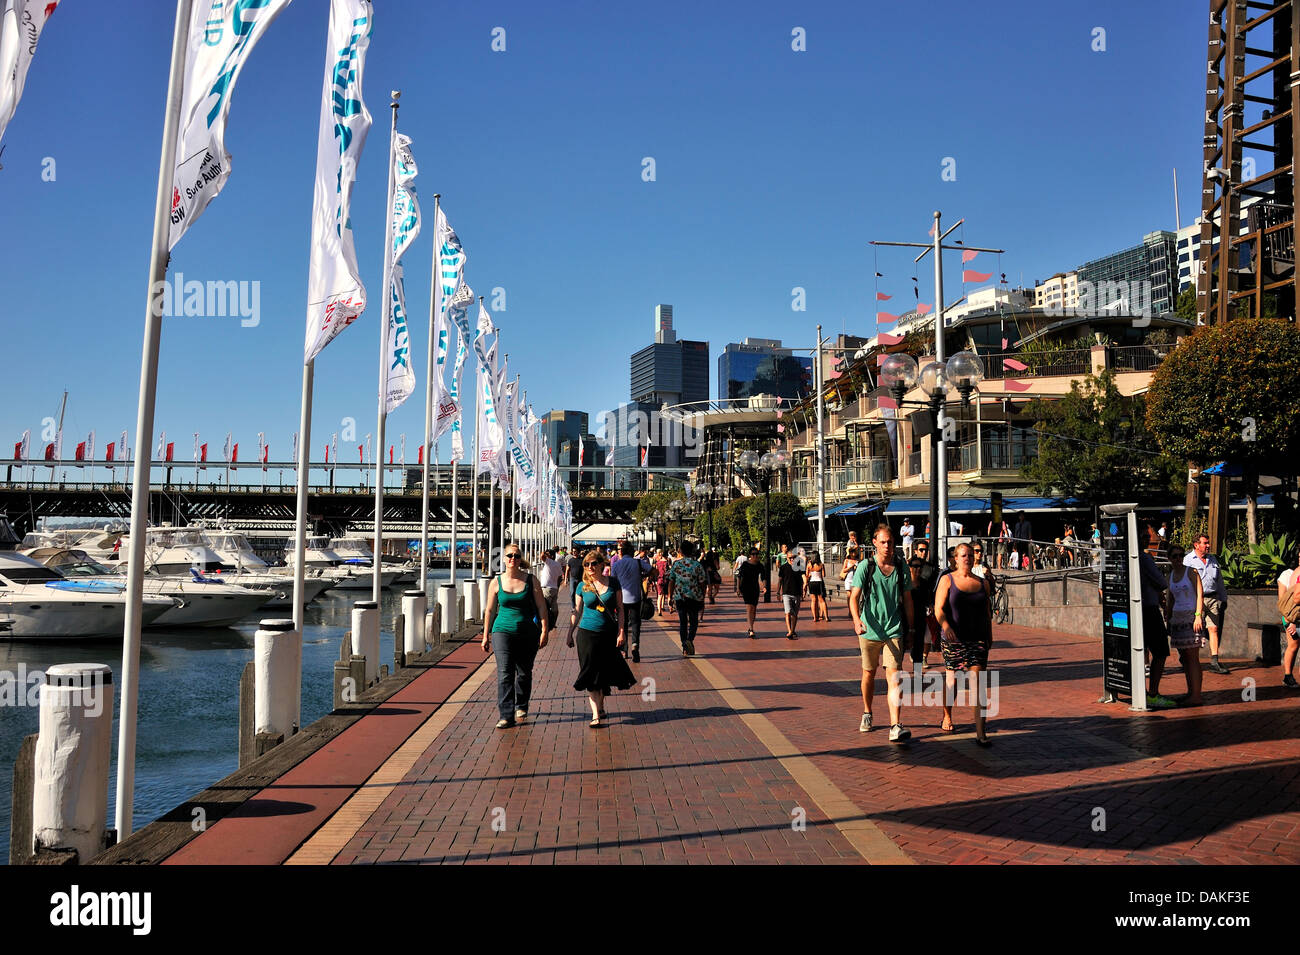 Cockle Bay Wharf at Darling Harbour. Sydney, New South Wales, AUSTRALIA - Stock Image